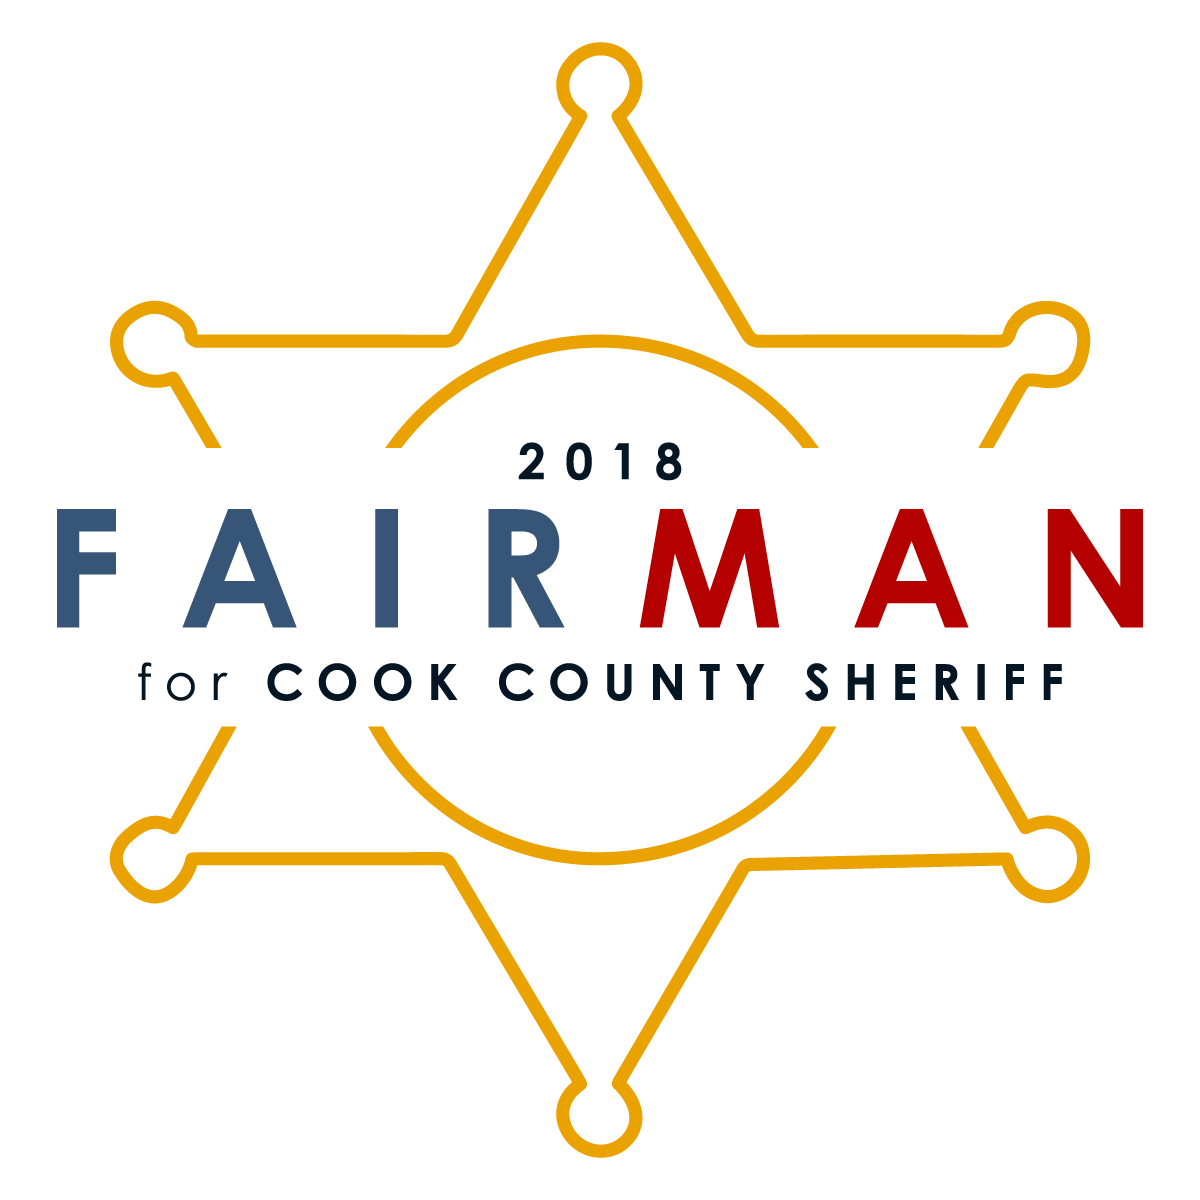 John Fairman for Cook County Sheriff